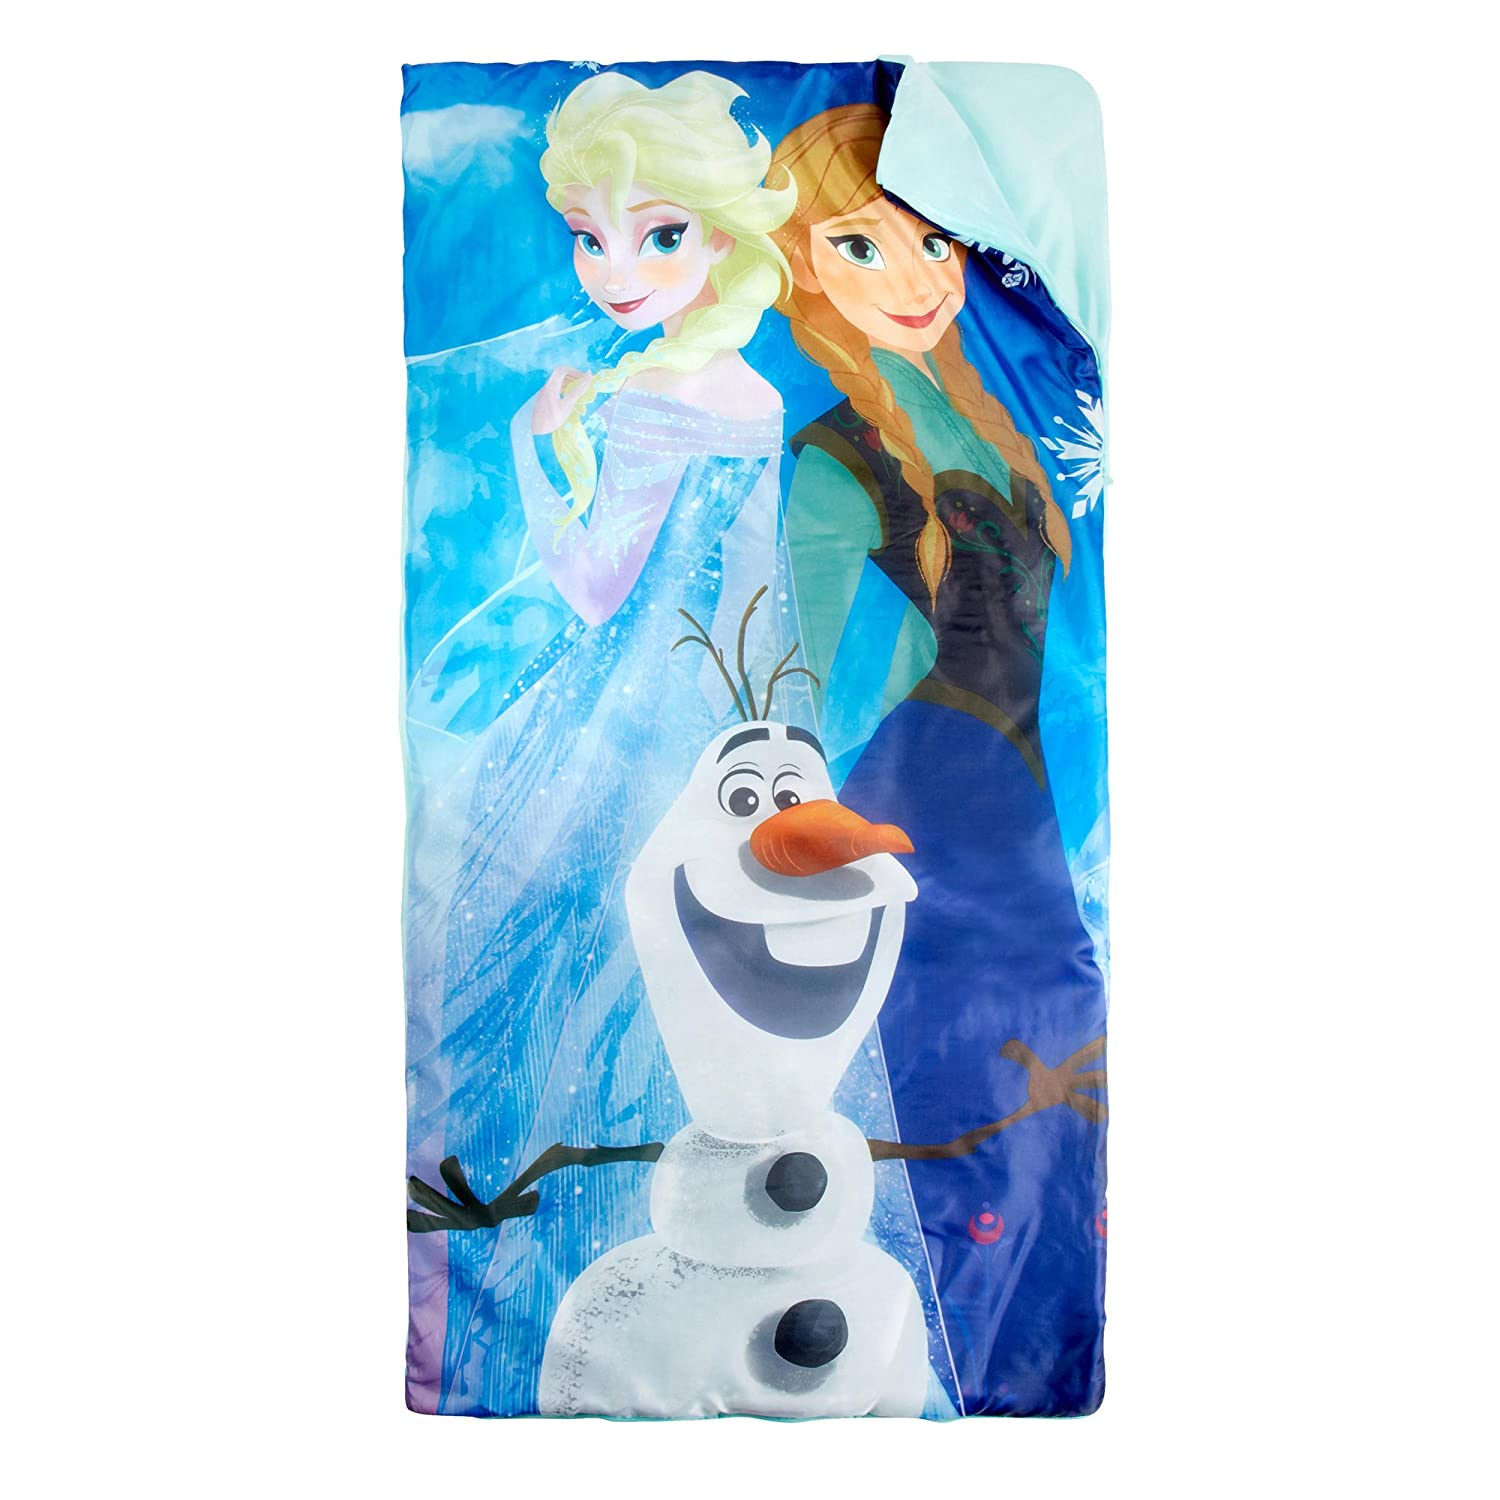 Disney Frozen Elsa Anna and Olaf Sleepingバッグandスリングセット B00ORHCLE0